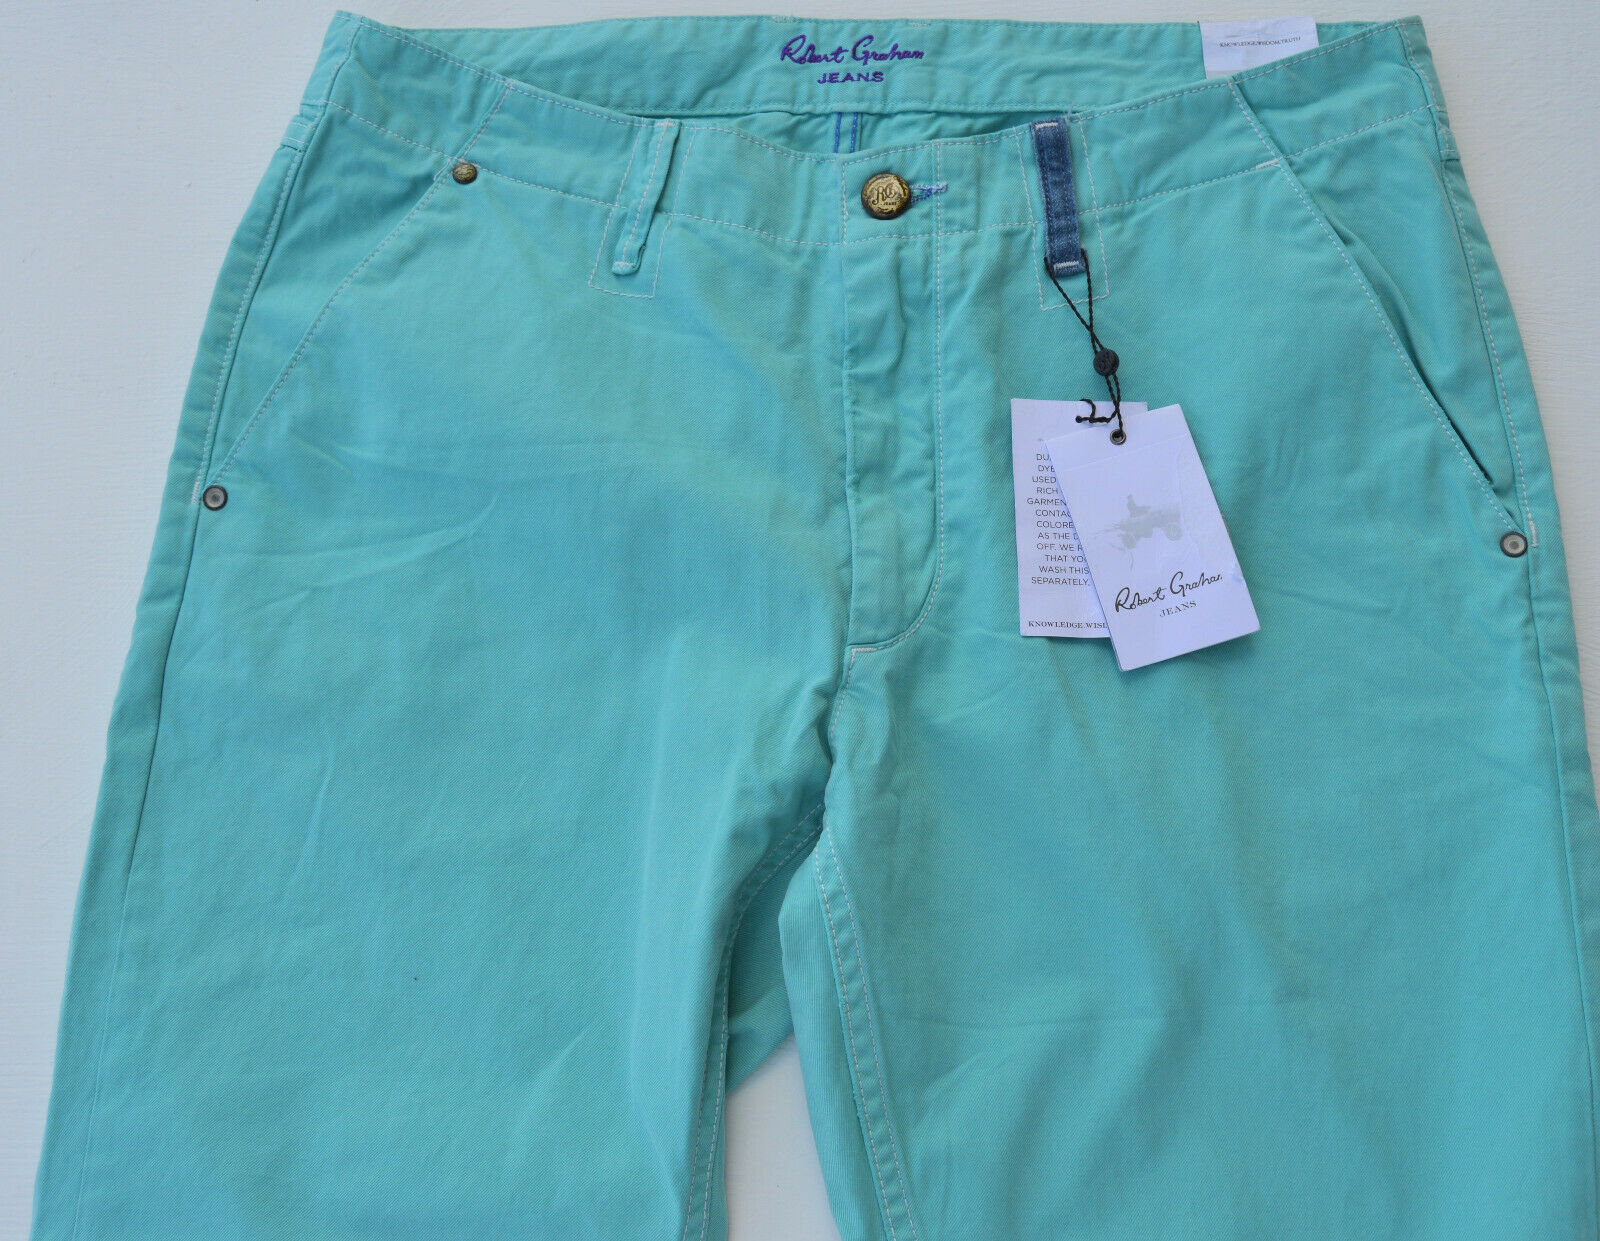 NWT  ROBERT GRAHAM MENS slim fit blueE JEANS SIZE 35X33.5